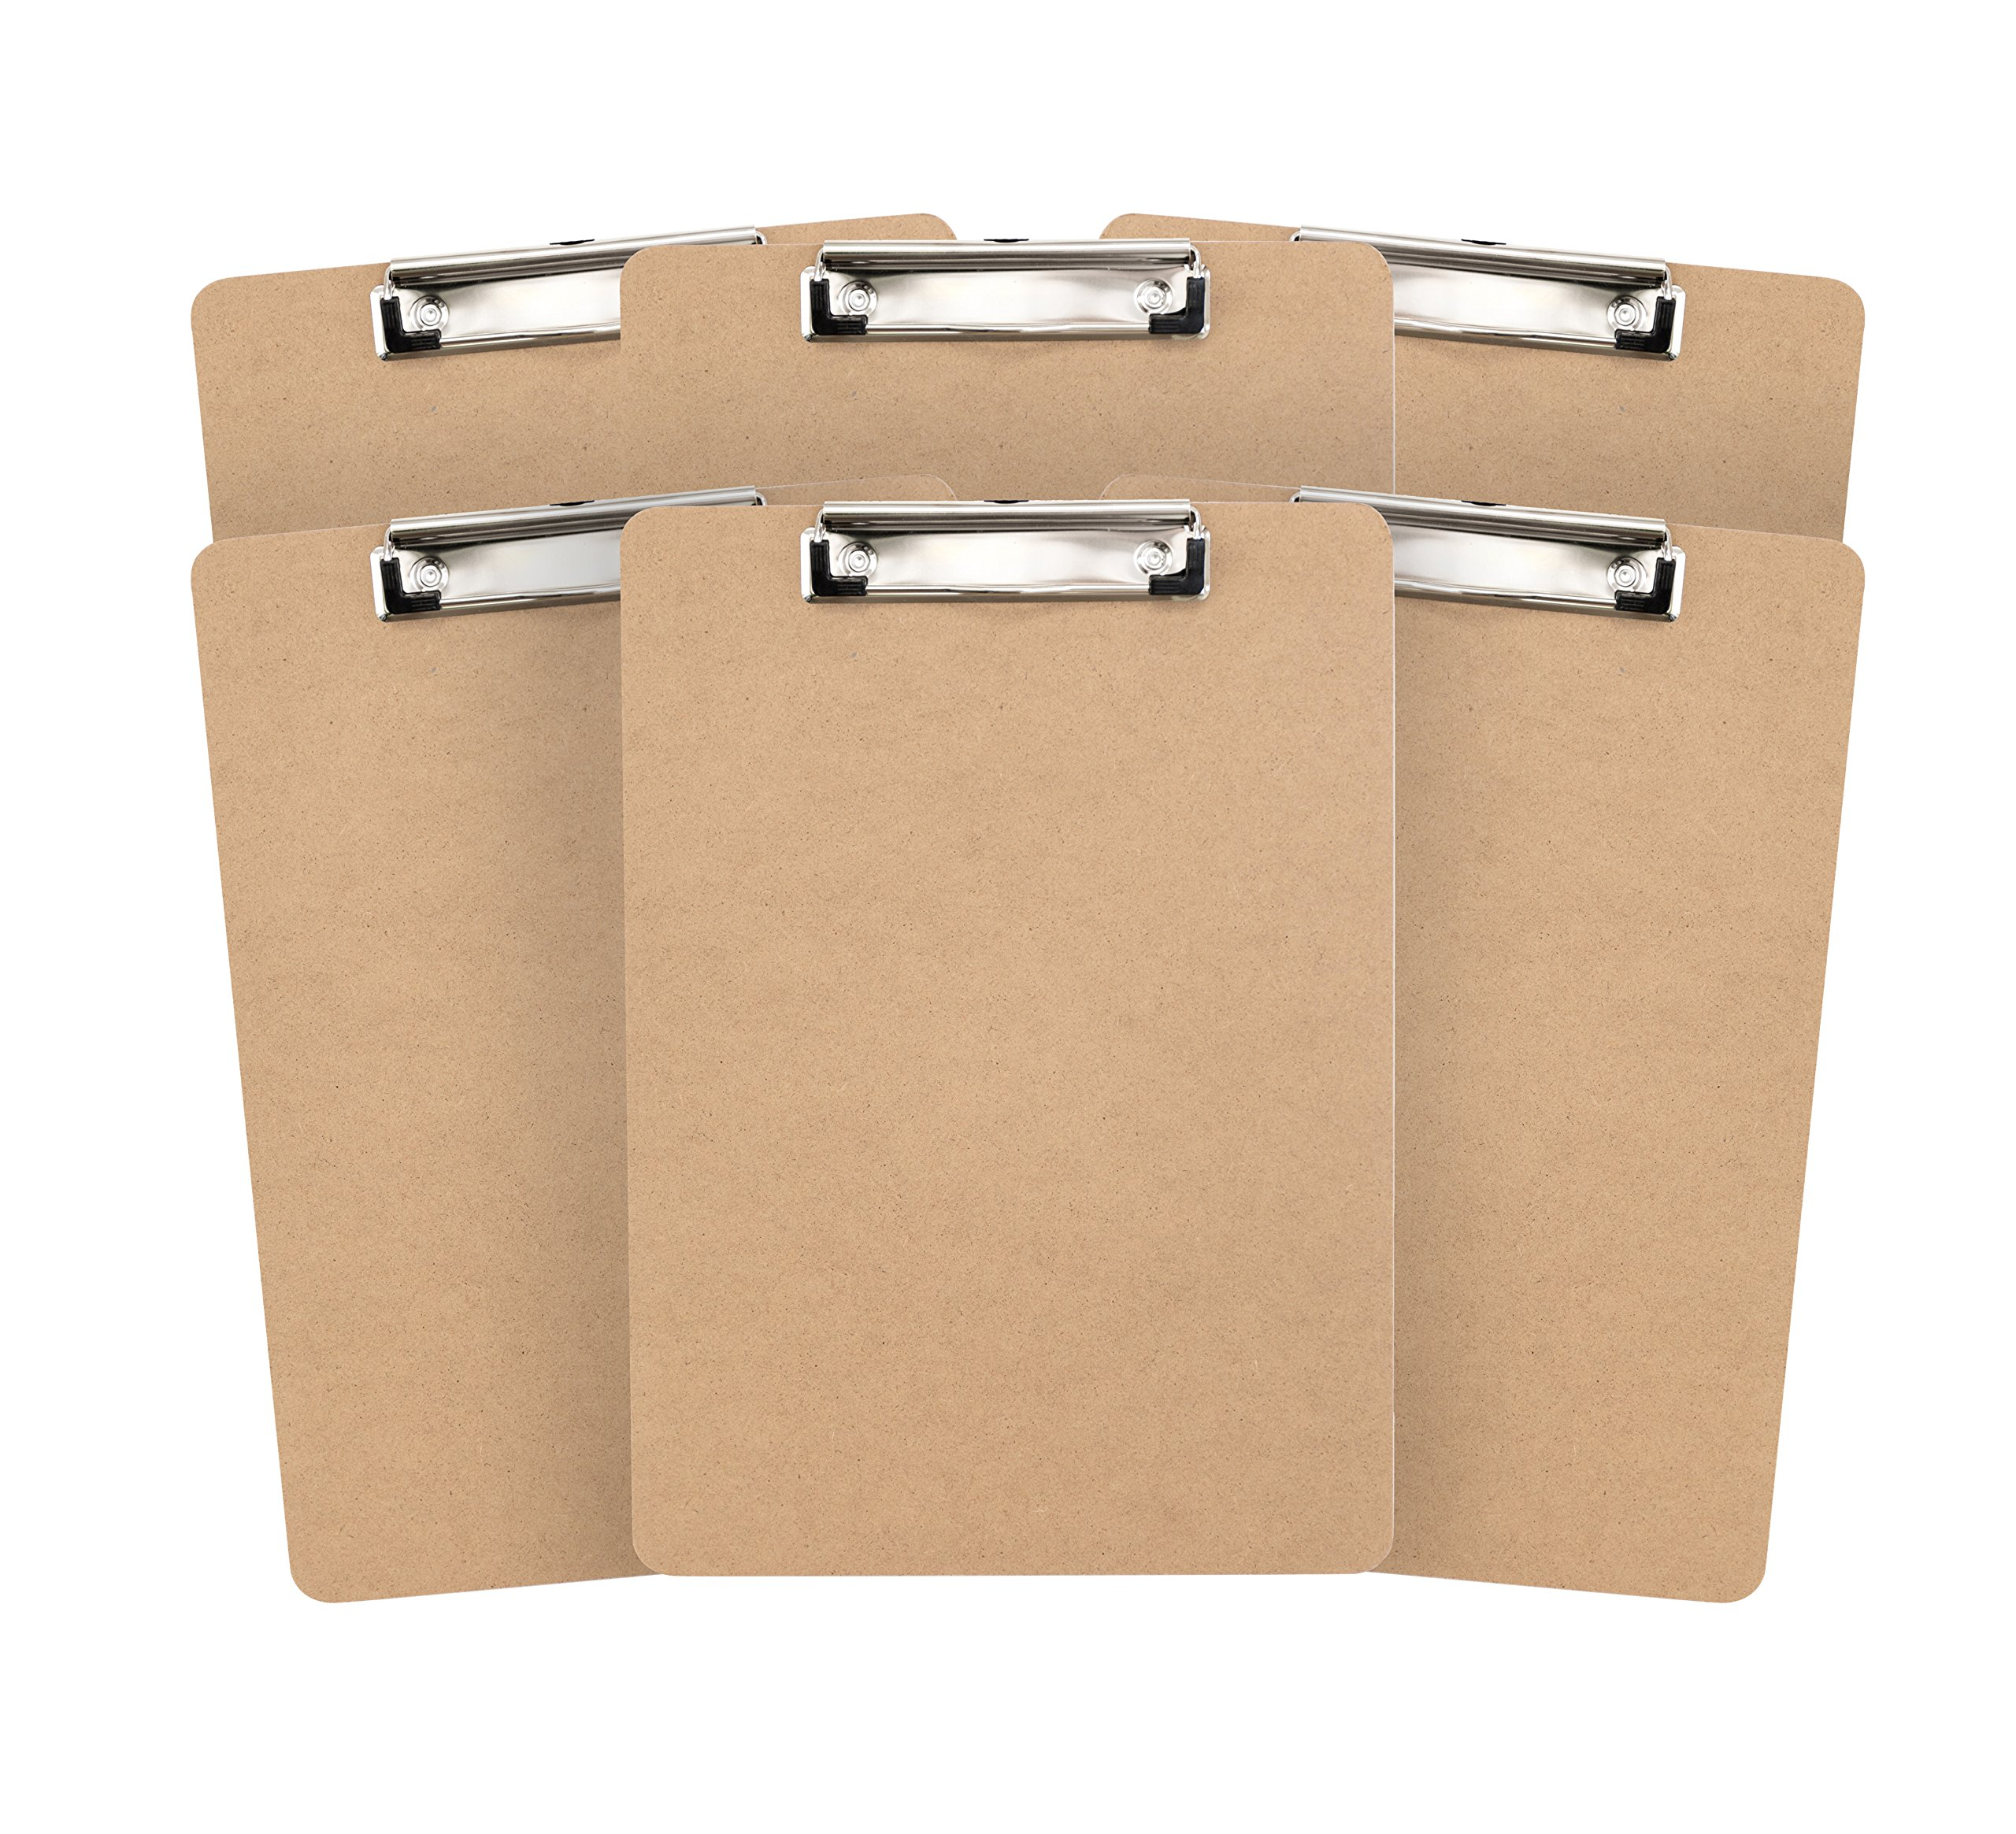 6 Hardboard Clipboards, Low Profile Clip, Design for classroom and office use, 6 Clipboards